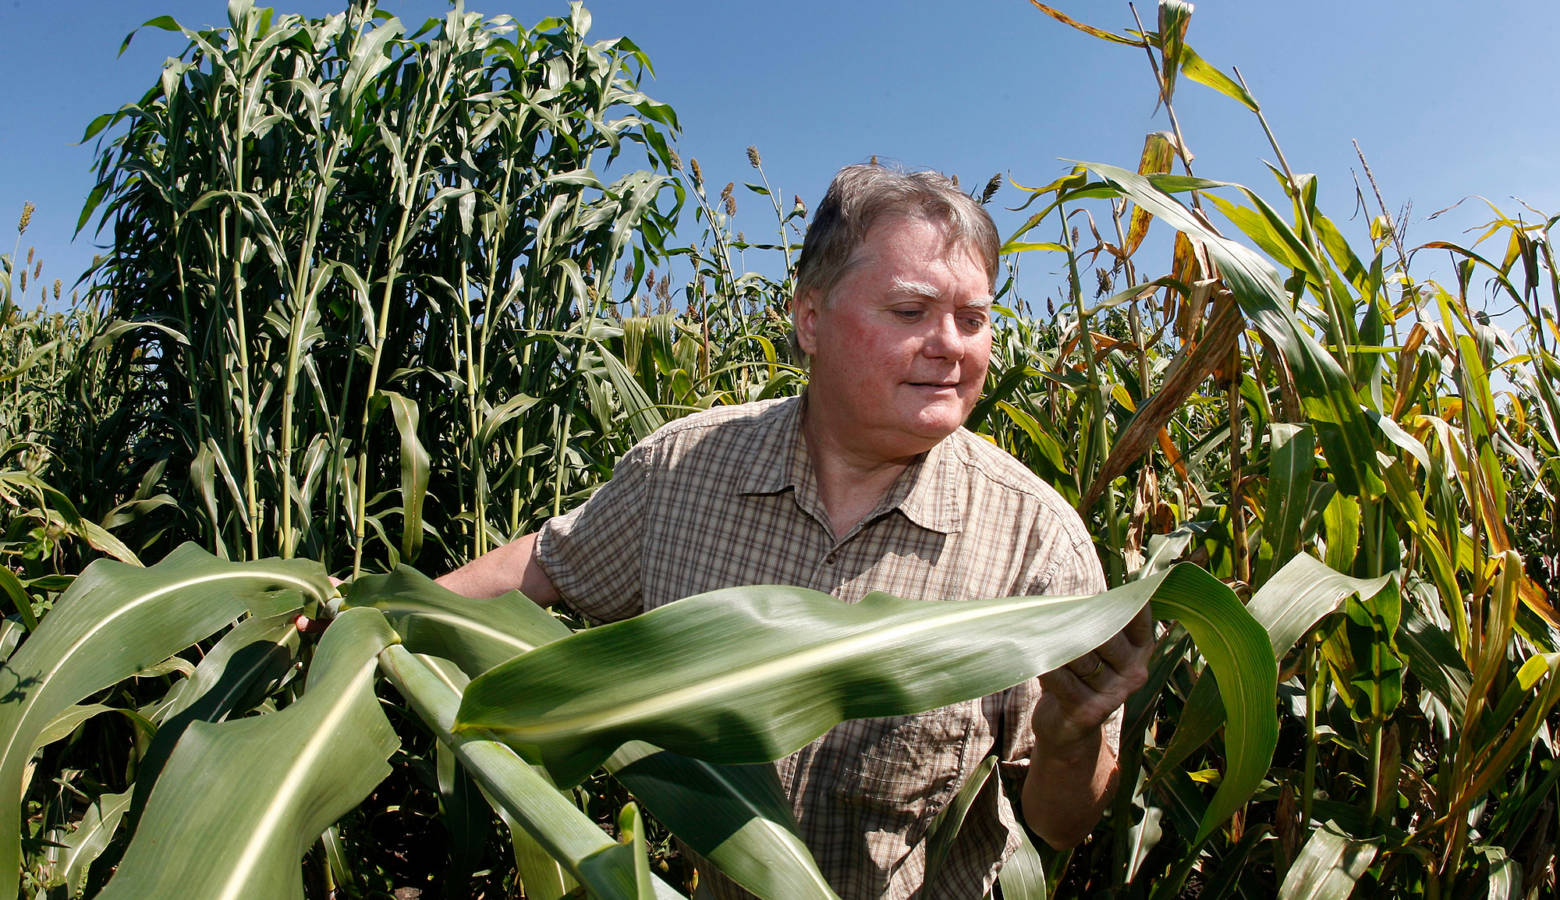 Purdue plant biologist Nick Carpita in a field of sorghum. (Tom Campbell/Purdue Agricultural Communication)